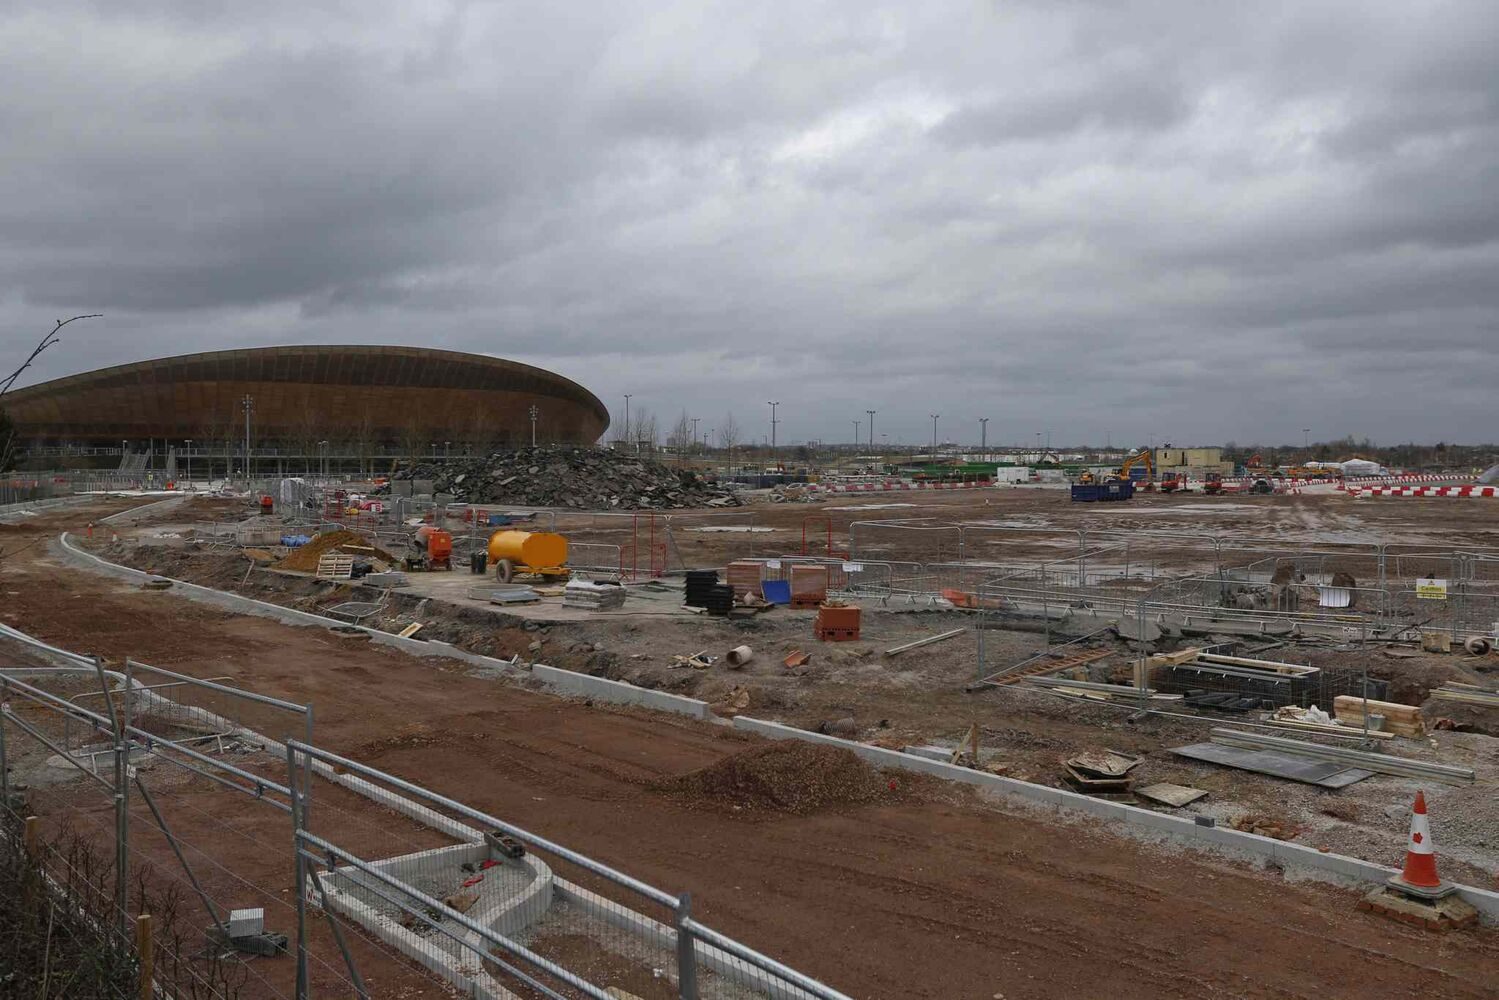 A view of the construction site in Queen Elizabeth Olympic Park in east London. The Games' Velodrome is seen at left. London continues to bask in the success of the most recent Summer Games, but the Olympic legacy is difficult to determine. The flagship venue, renamed the Queen Elizabeth Olympic Park, is being converted into a massive park as big as London's famous Hyde Park, complete with wildlife habitats, woods and sports facilities. The first part of the ambitious project will begin to open to the public in April. The 80,000-seat Olympic Stadium at the center of the park has been troubled by controversy since even before the games, and its post-games use was the subject of months of legal wrangling. The stadium is now being converted into a soccer venue and the home of the West Ham soccer club, with an expected price tag of $323 million. Many argue taxpayers should not have to fund a Premier League club, though officials insist that the stadium will continue to host other major sporting events, including the Rugby World Cup in 2015.  (Lefteris Pitarakis / The Associated Press)